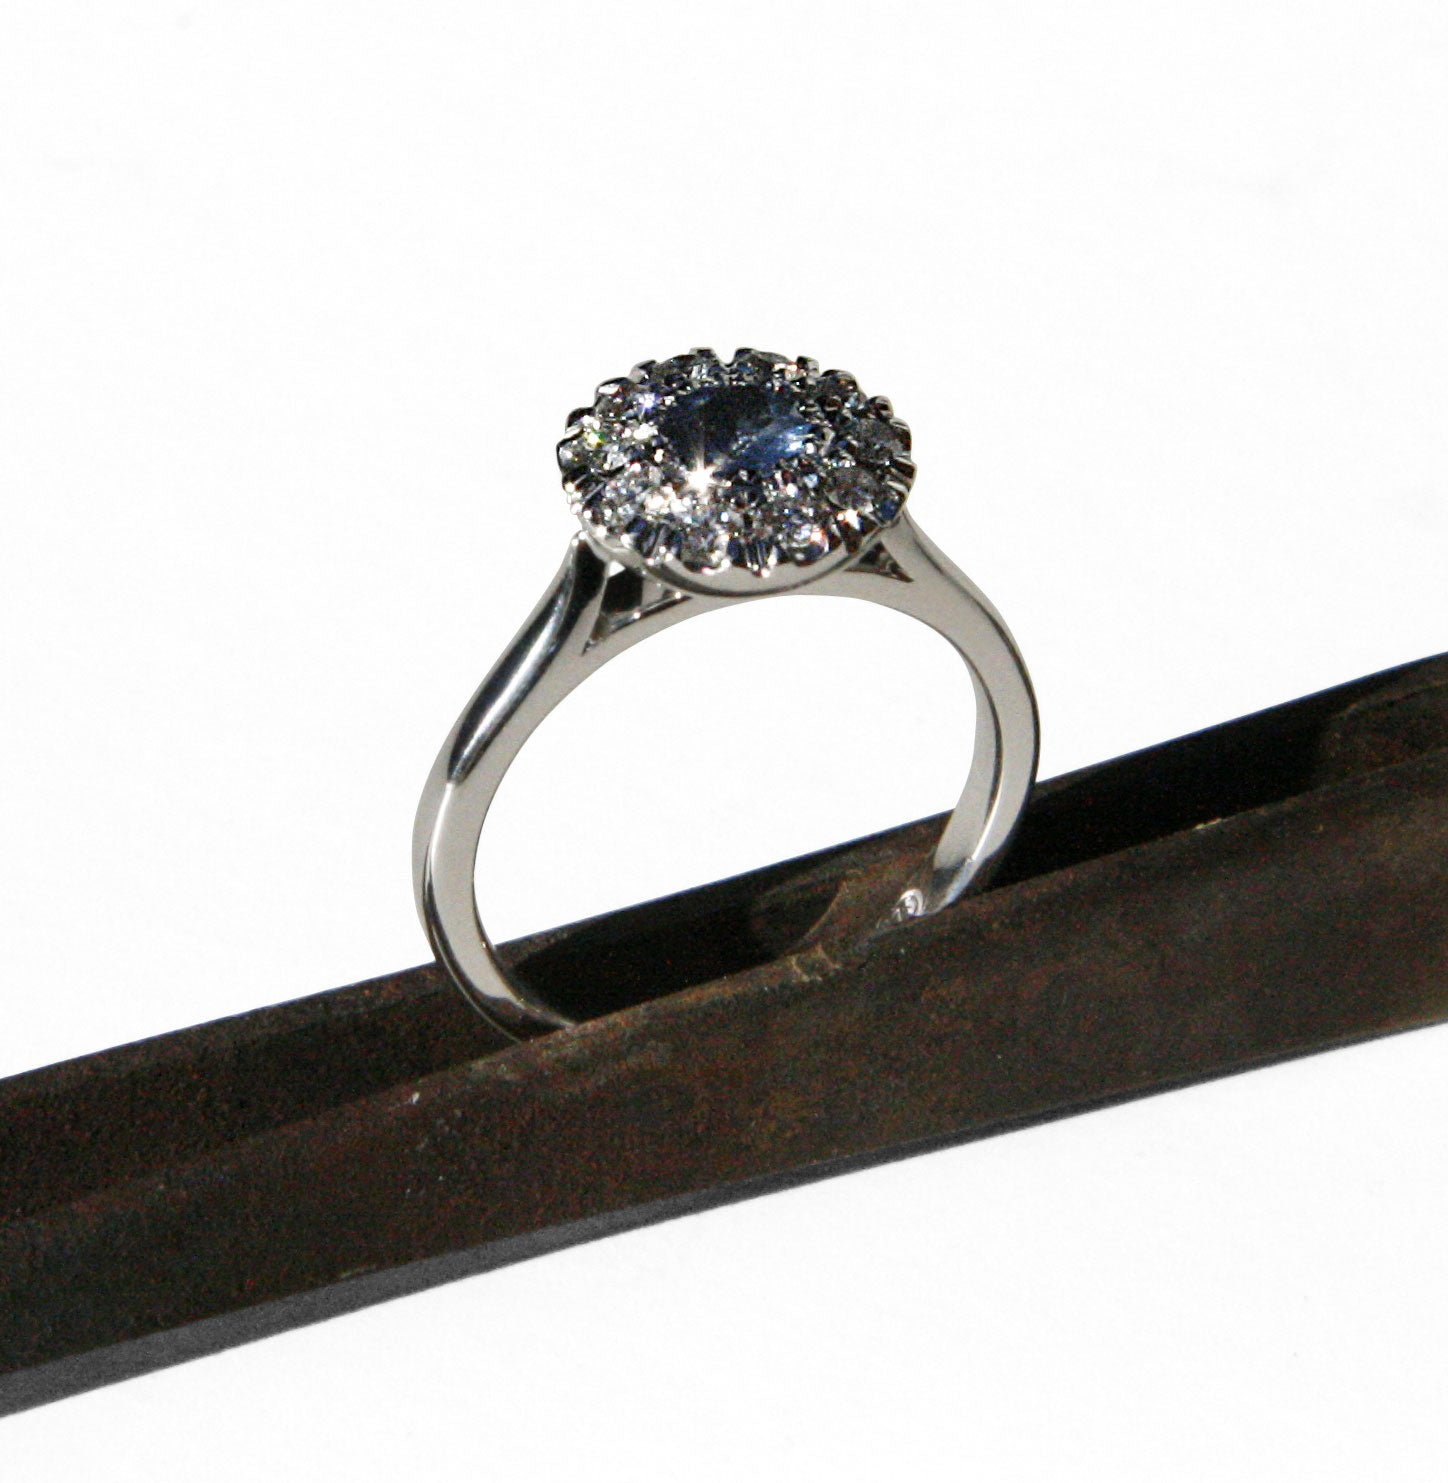 Sapphire and diamond 'button' engagement ring